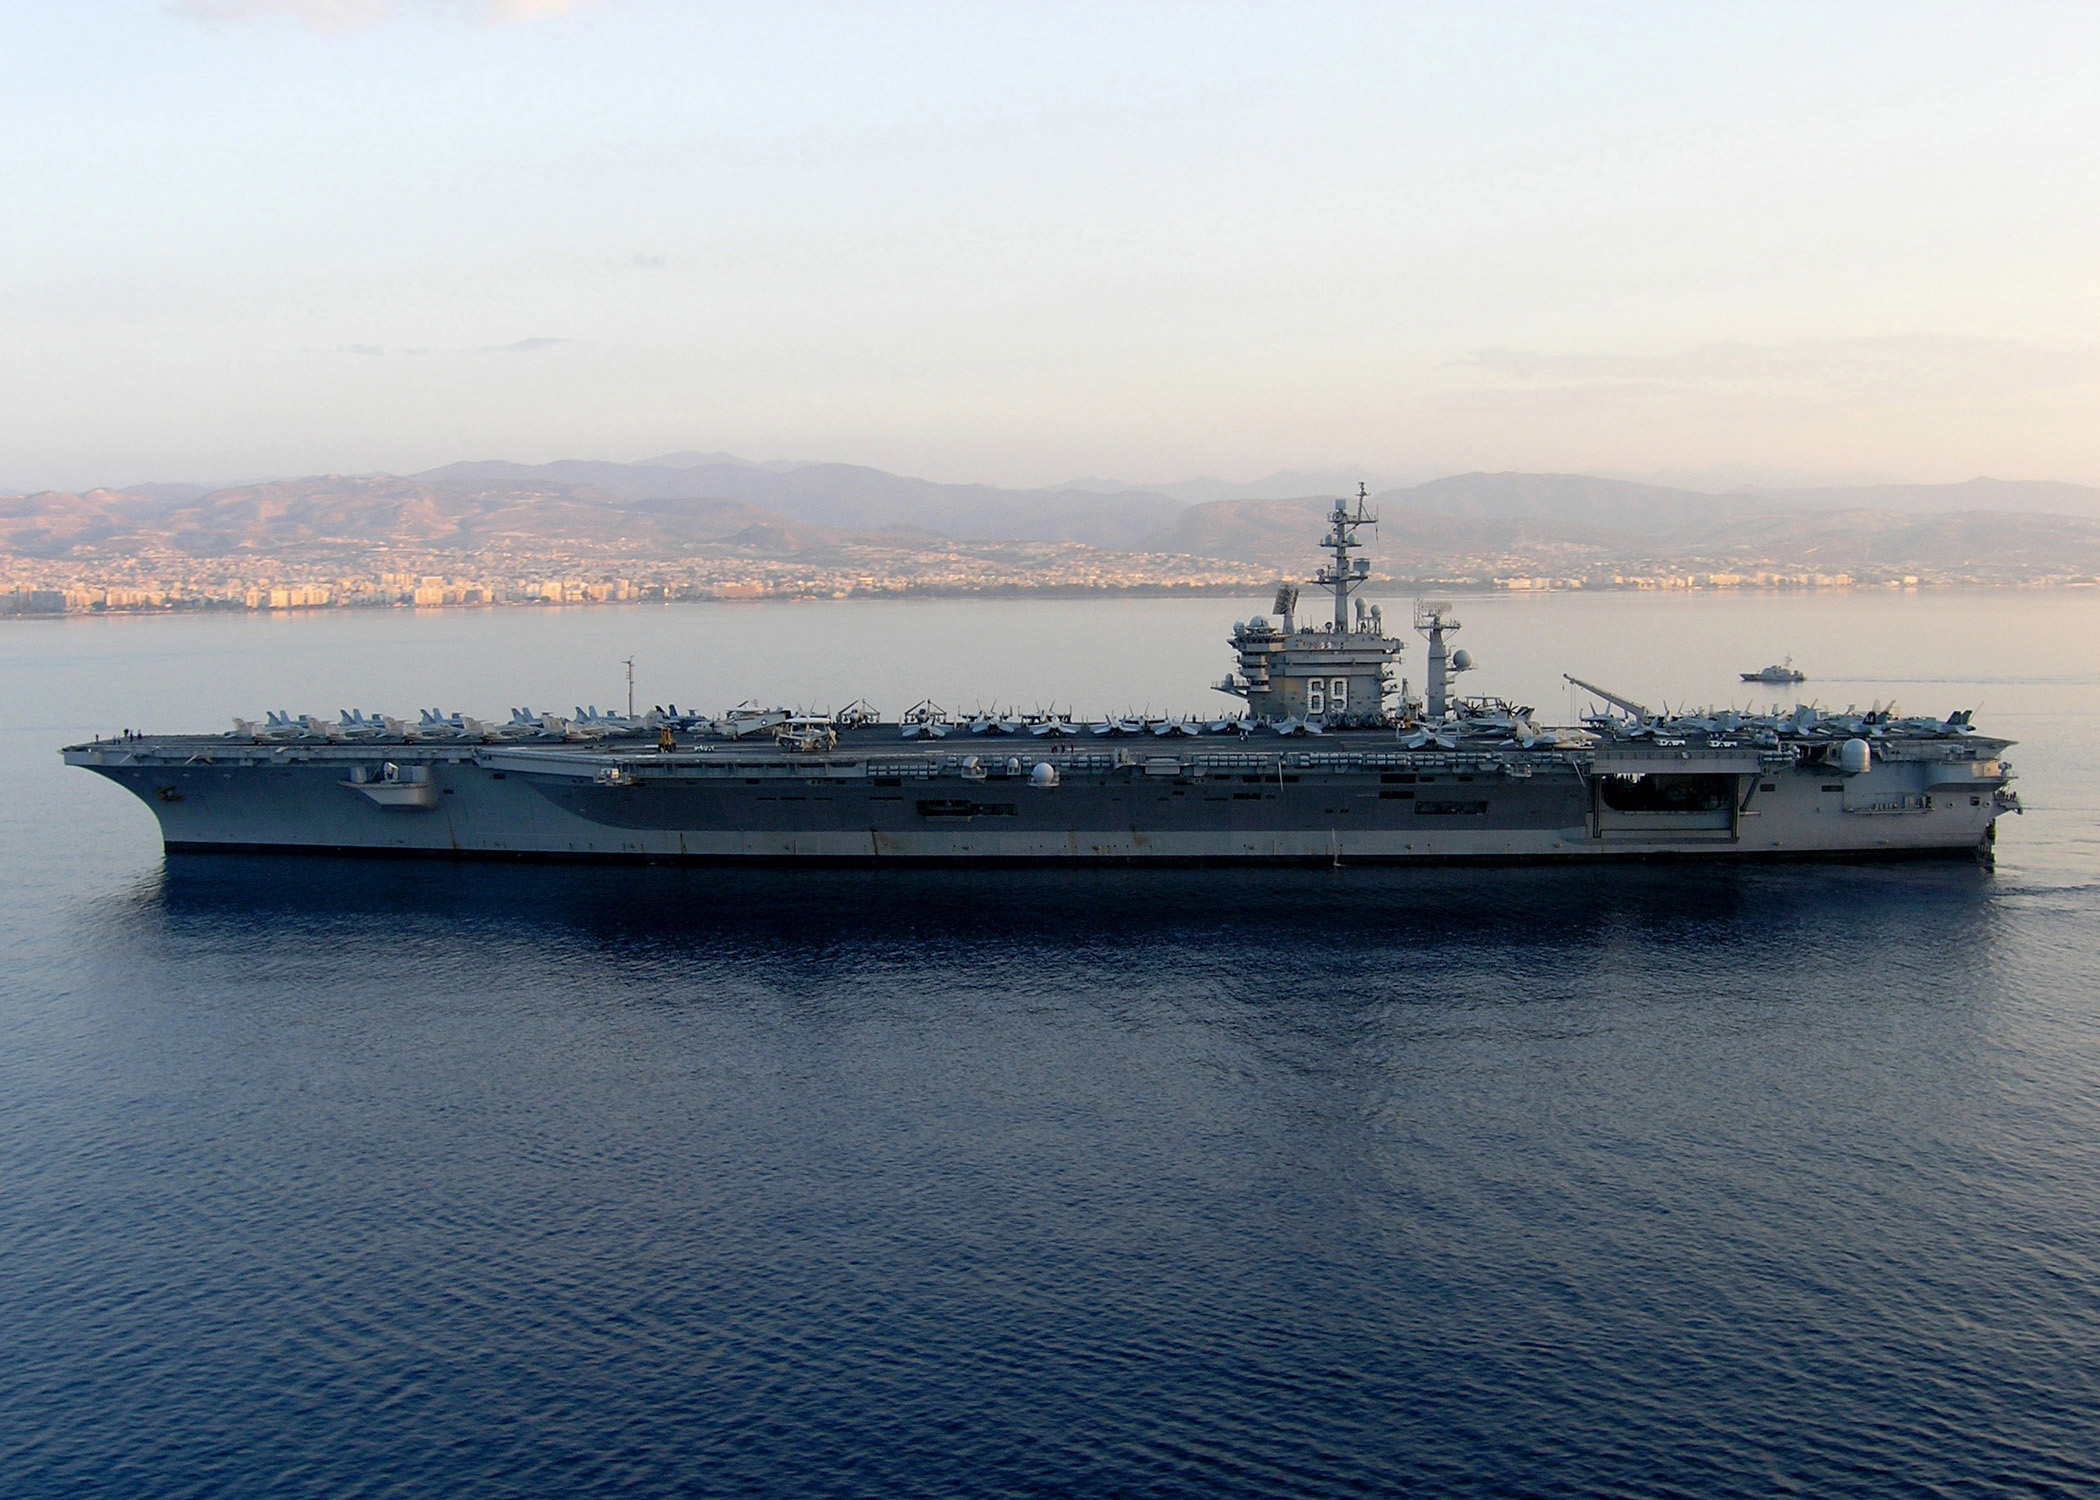 USS Dwight D. Eisenhower near Cyprus